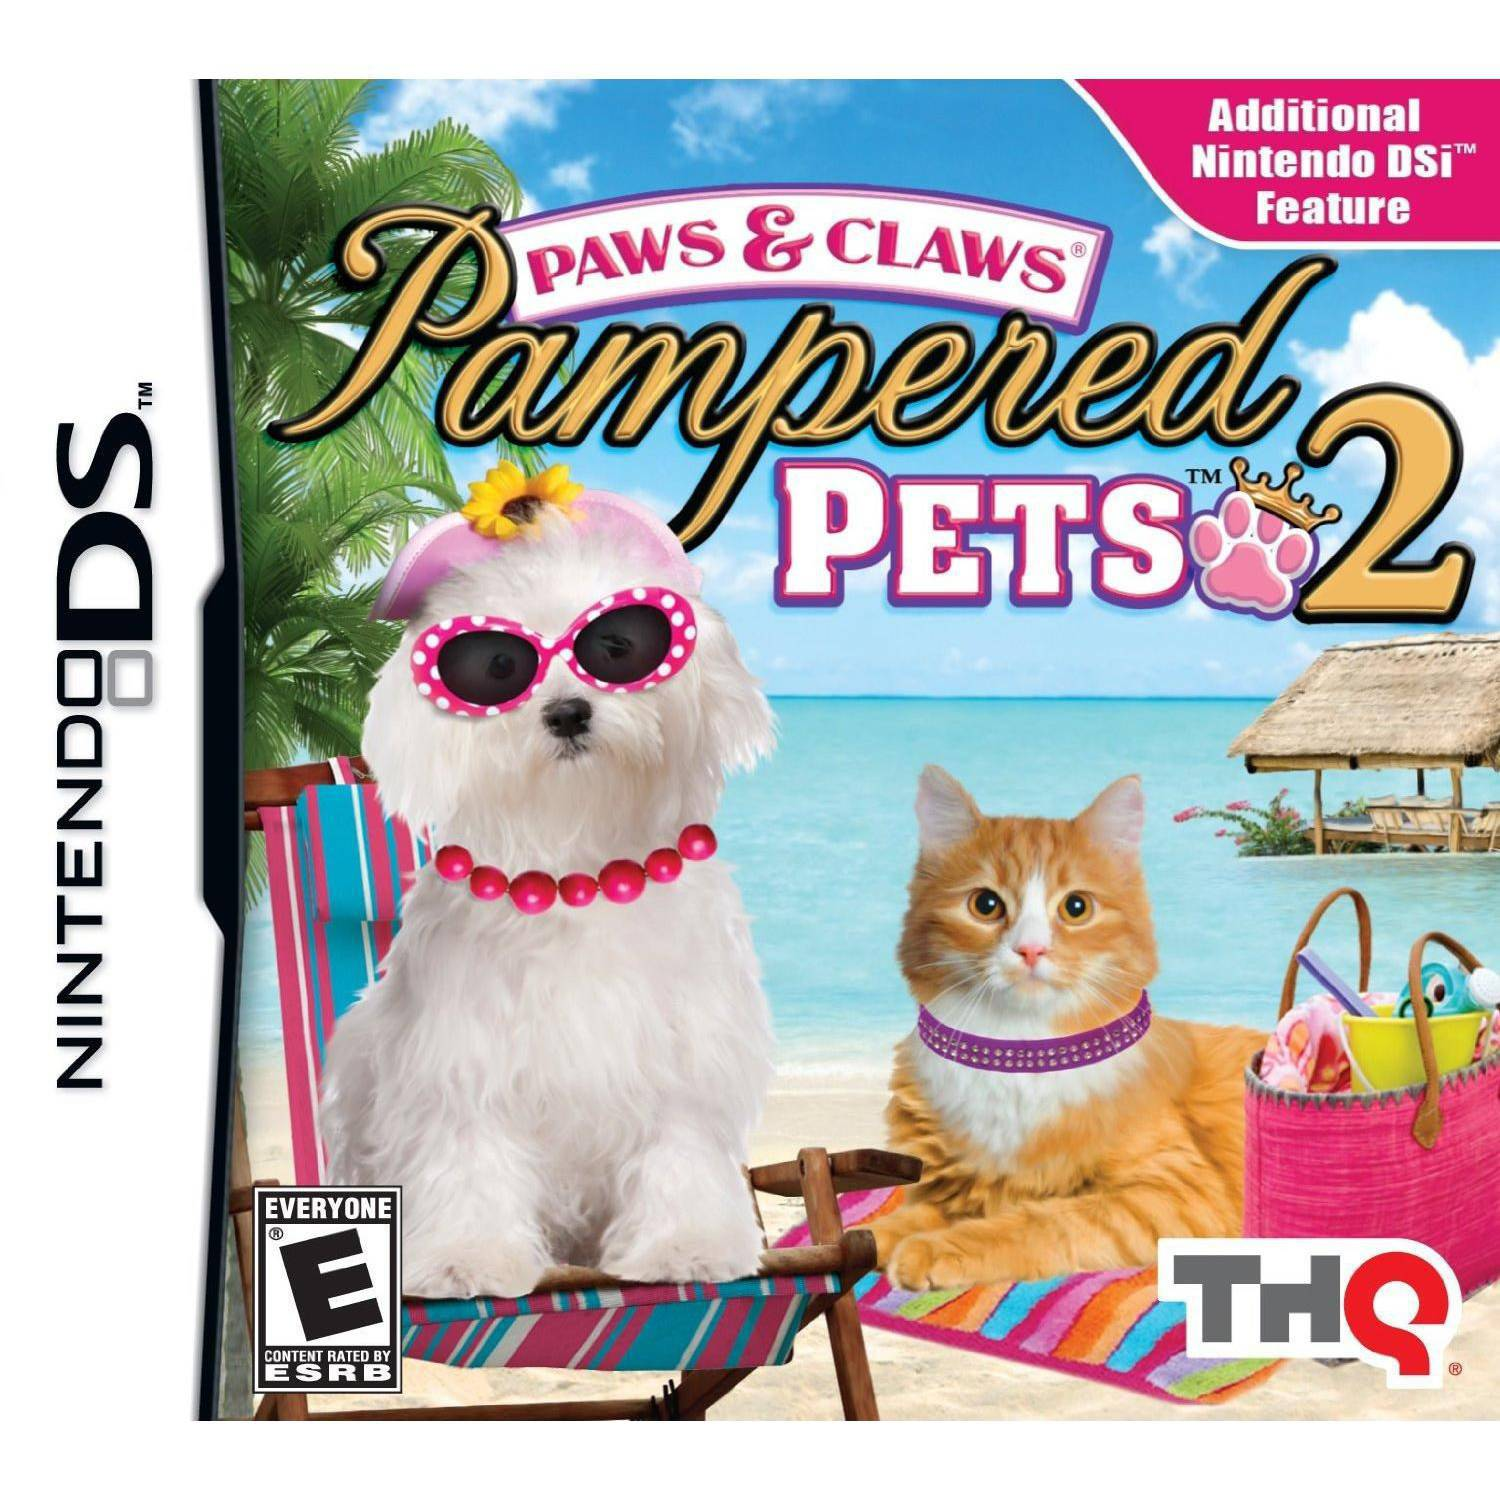 Paws & Claws Pampered Pets 2 - Nintendo DS